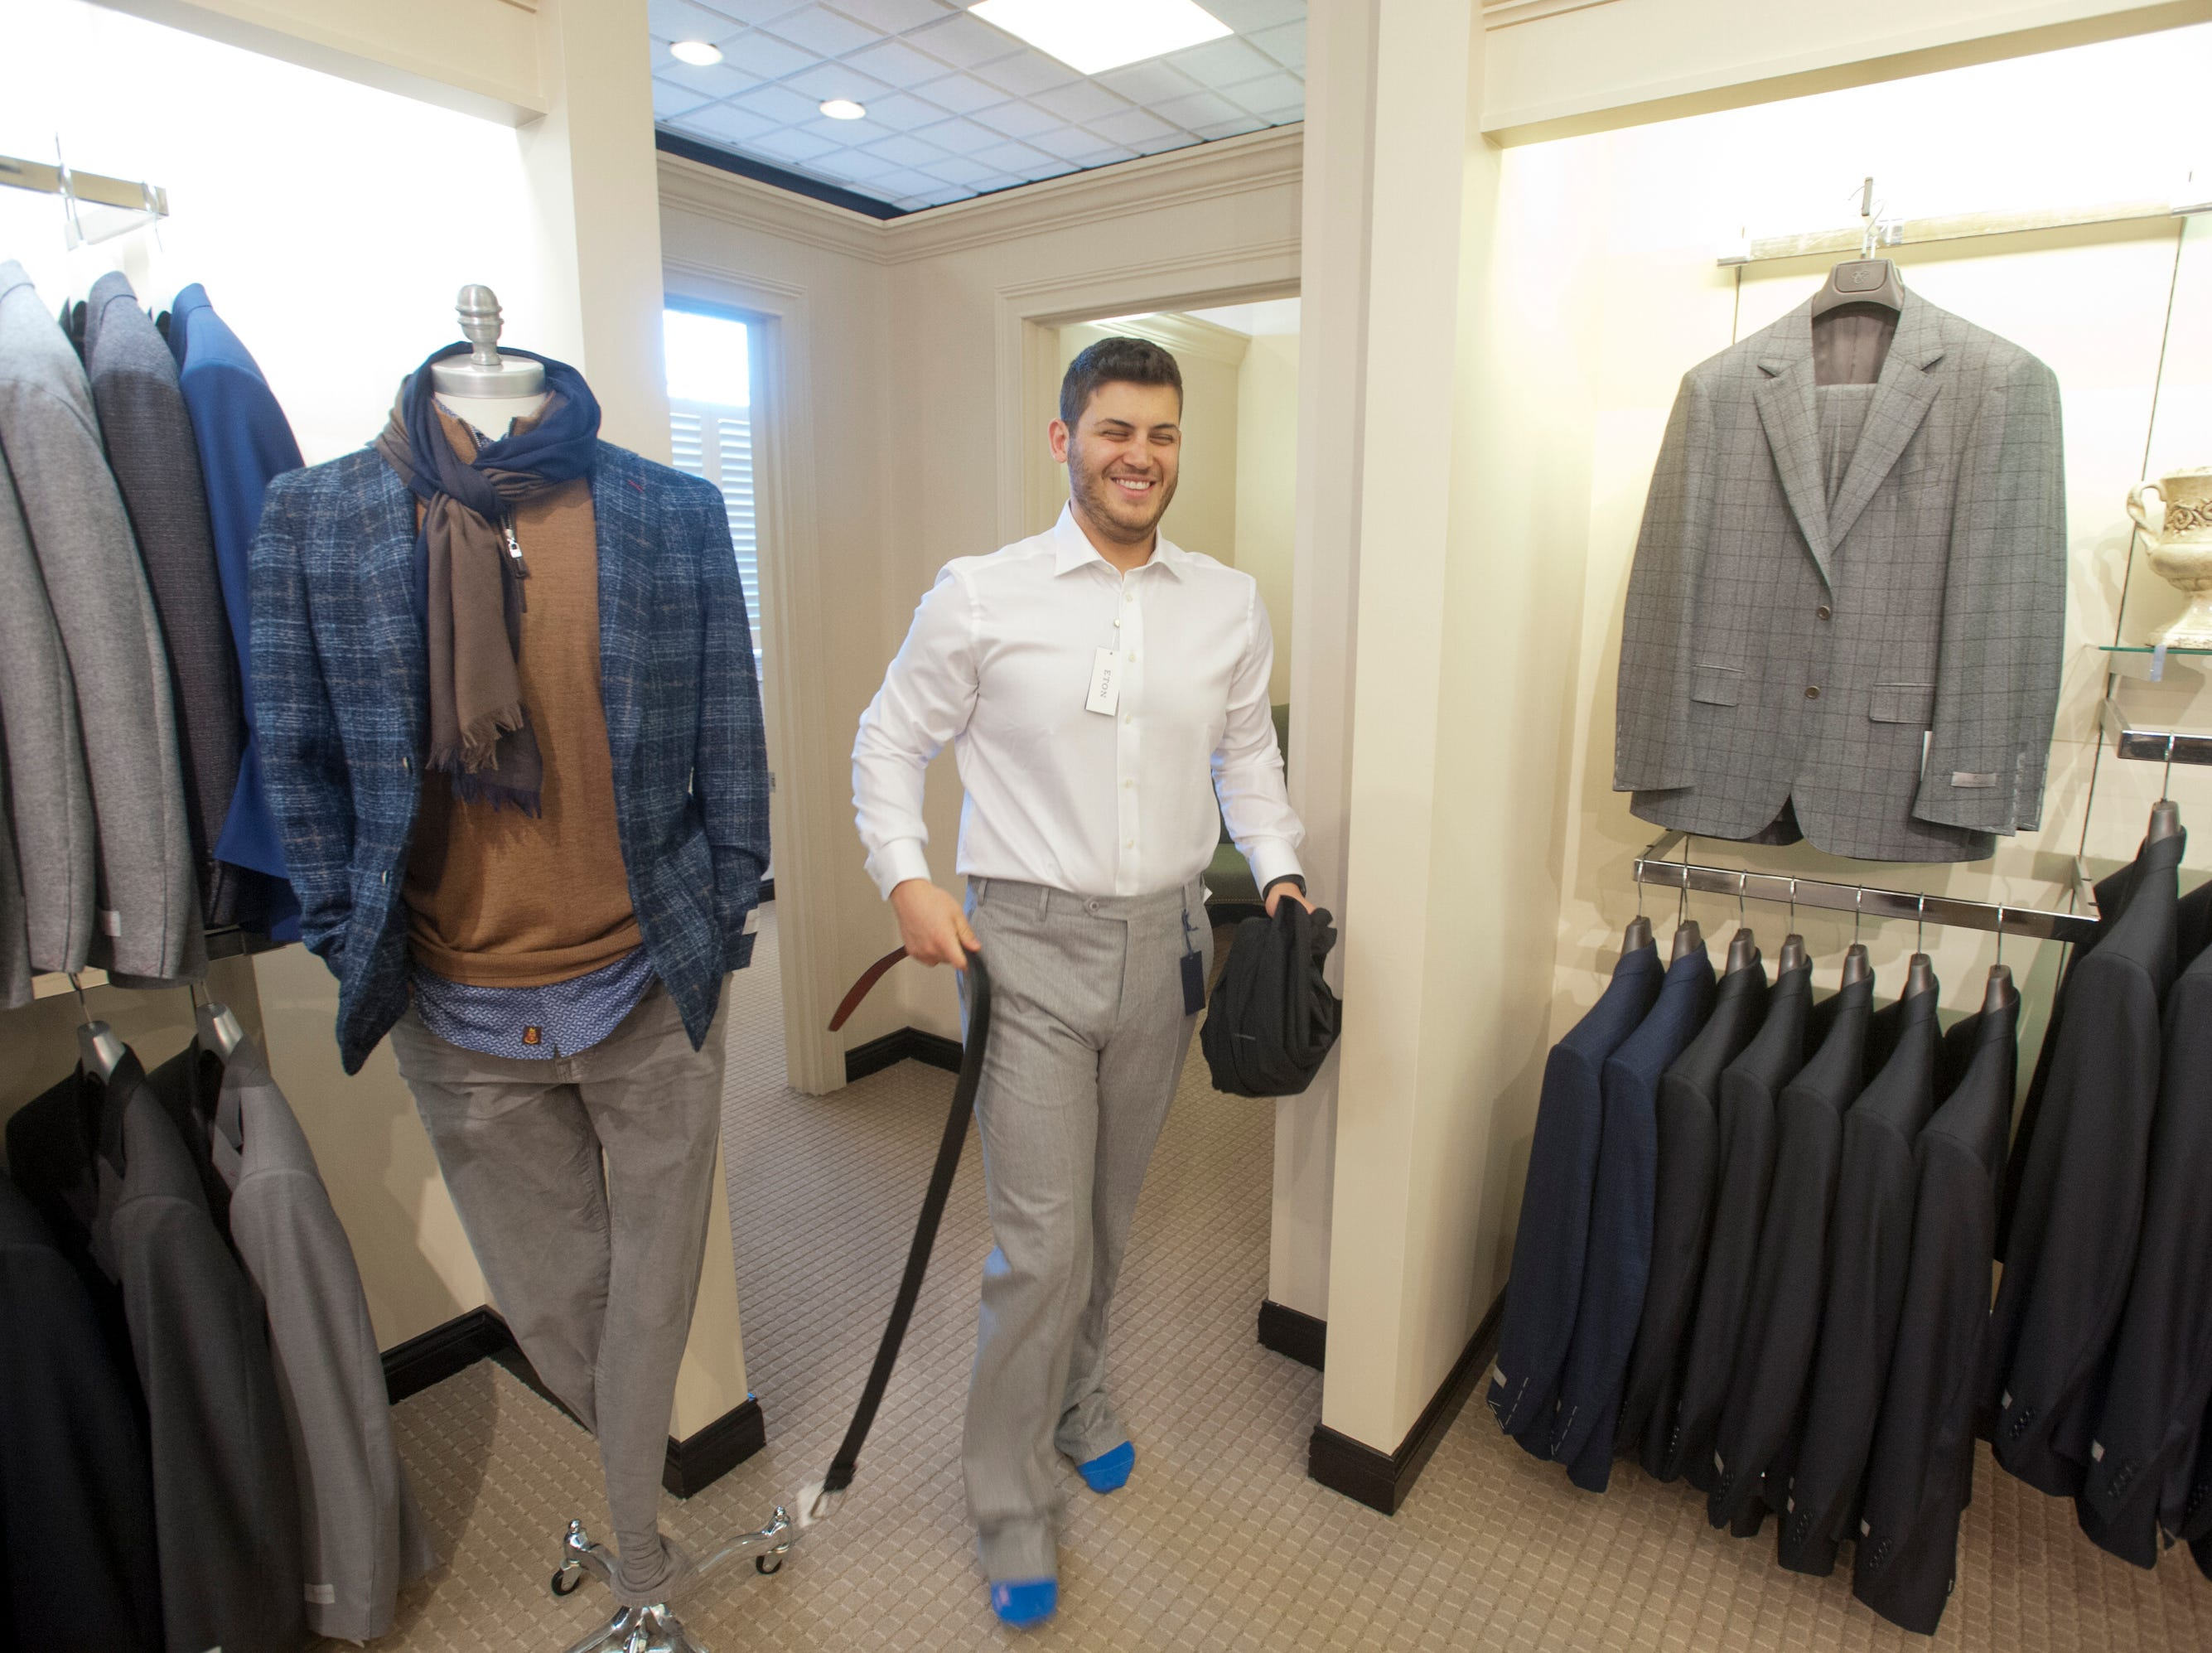 Morgan Davis of Sydney, Australia emerges from the dressing room at the Rodes Store on Brownsboro Road. Davis was in the store buying clothing for his upcoming wedding on December 29th.